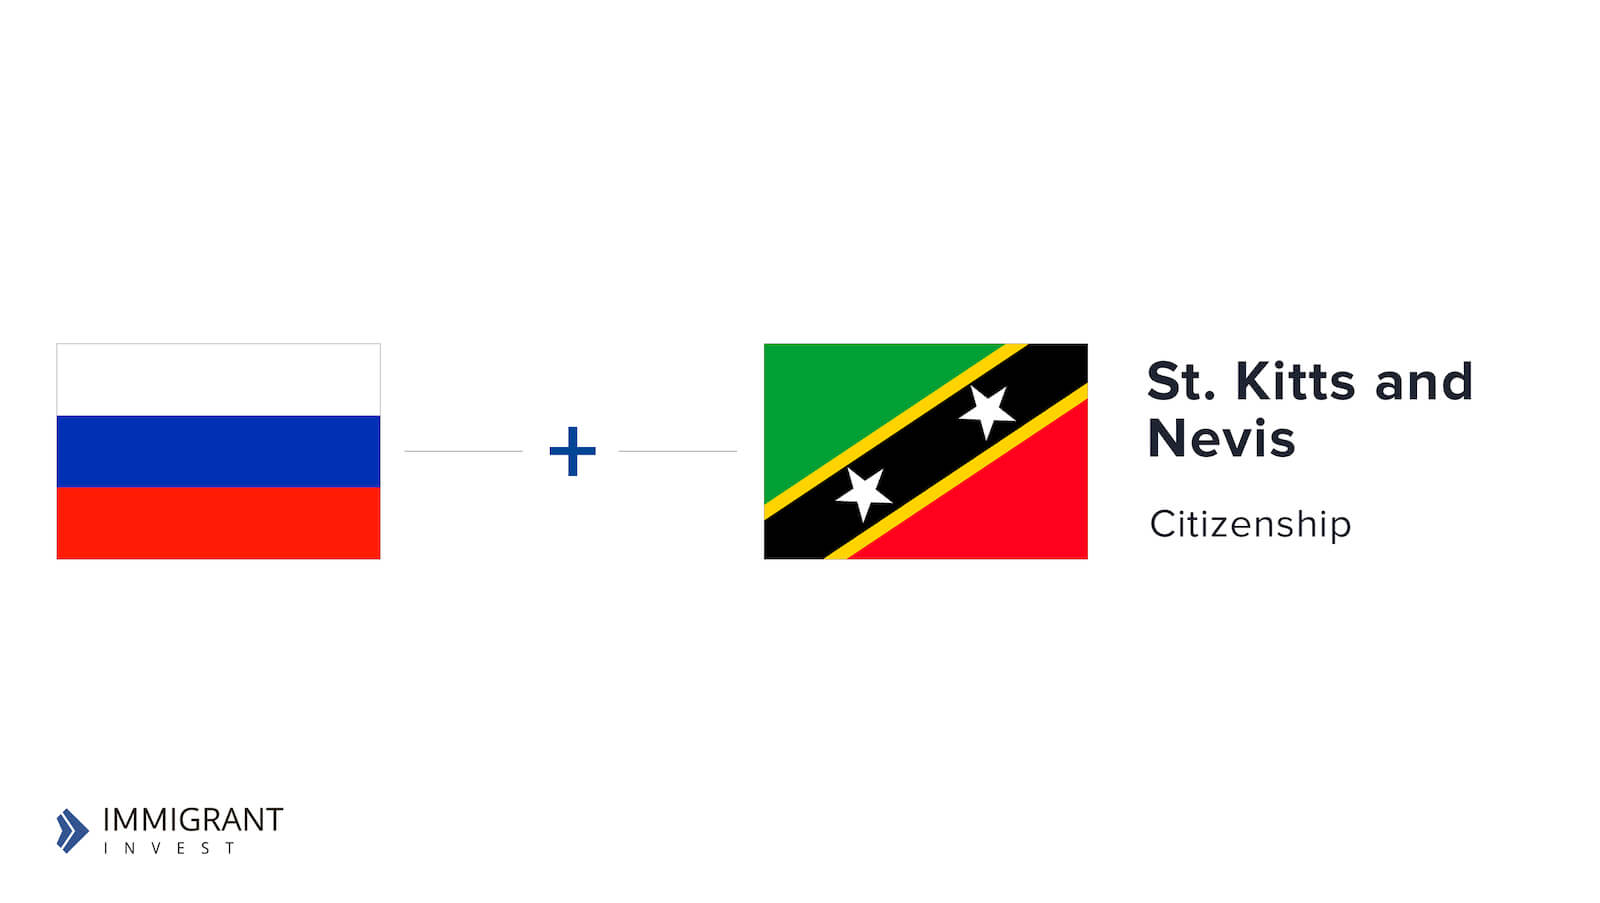 St. Kitts and Nevis Citizenship